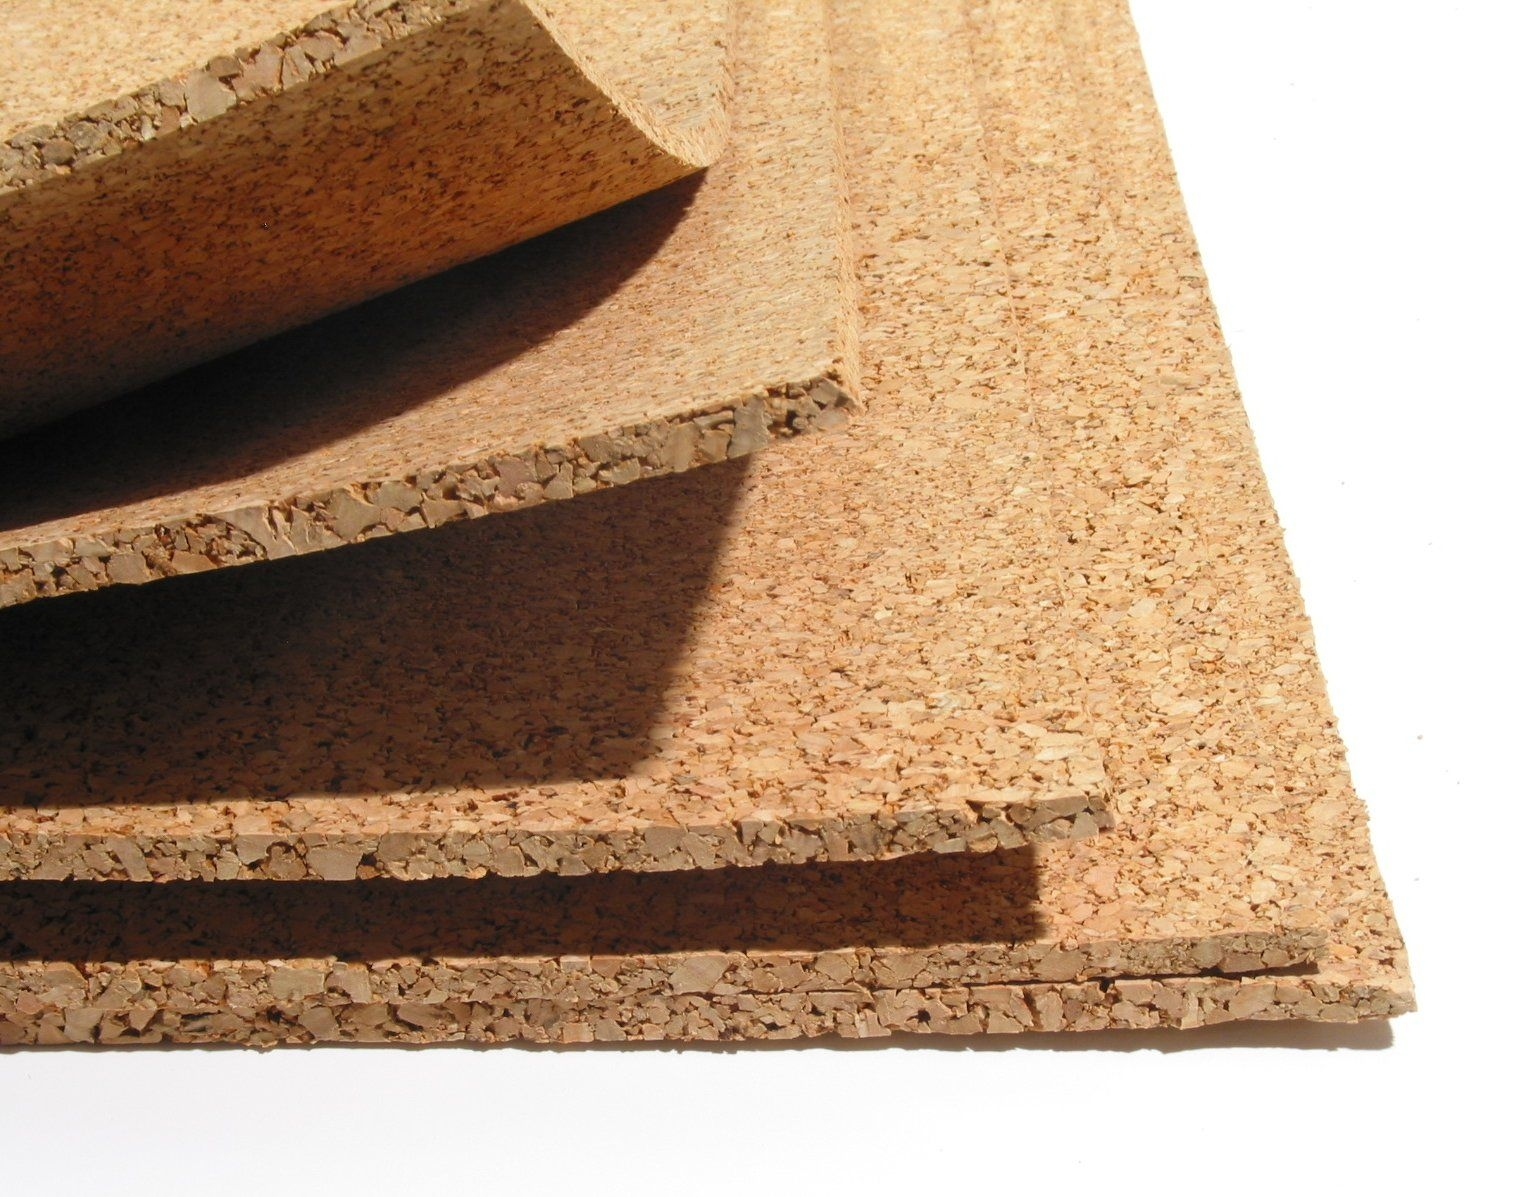 Cork Underlayment For Engineered Wood Flooringall about underlayments